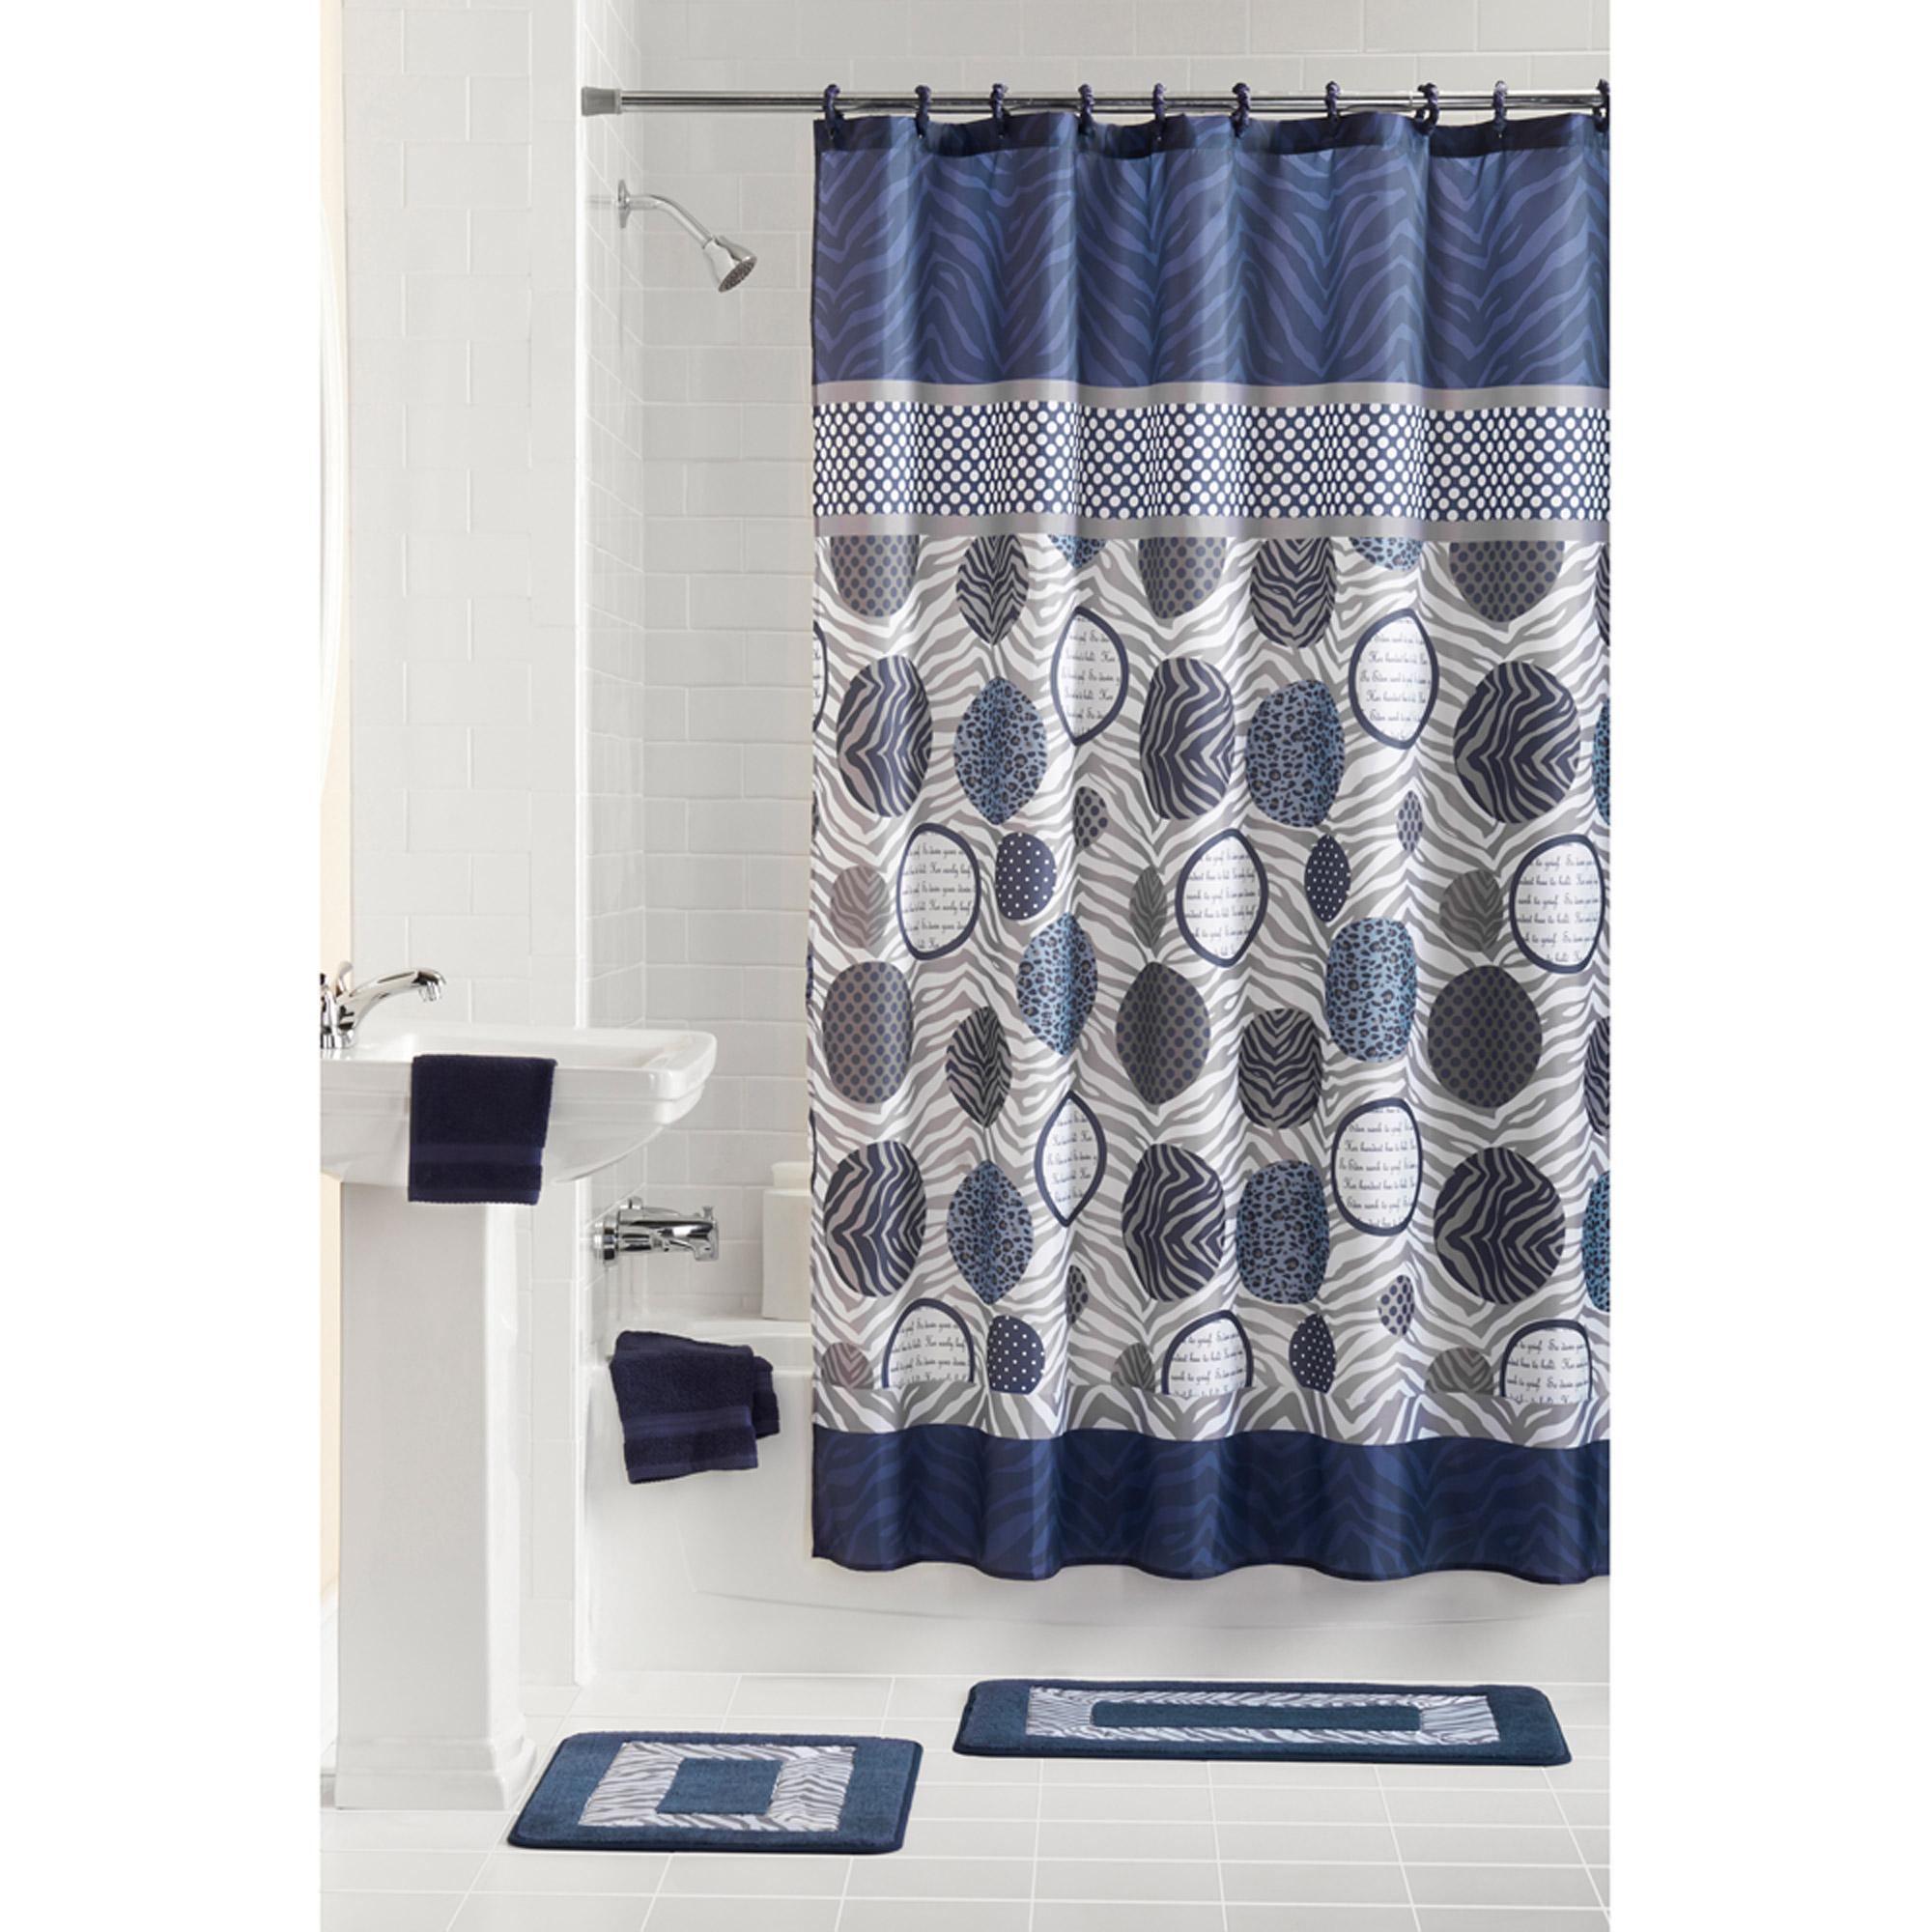 Gentil Bright Idea Bathroom Shower Curtain And Rug Sets With Rugs 43 With Regard  To Dimensions 2000